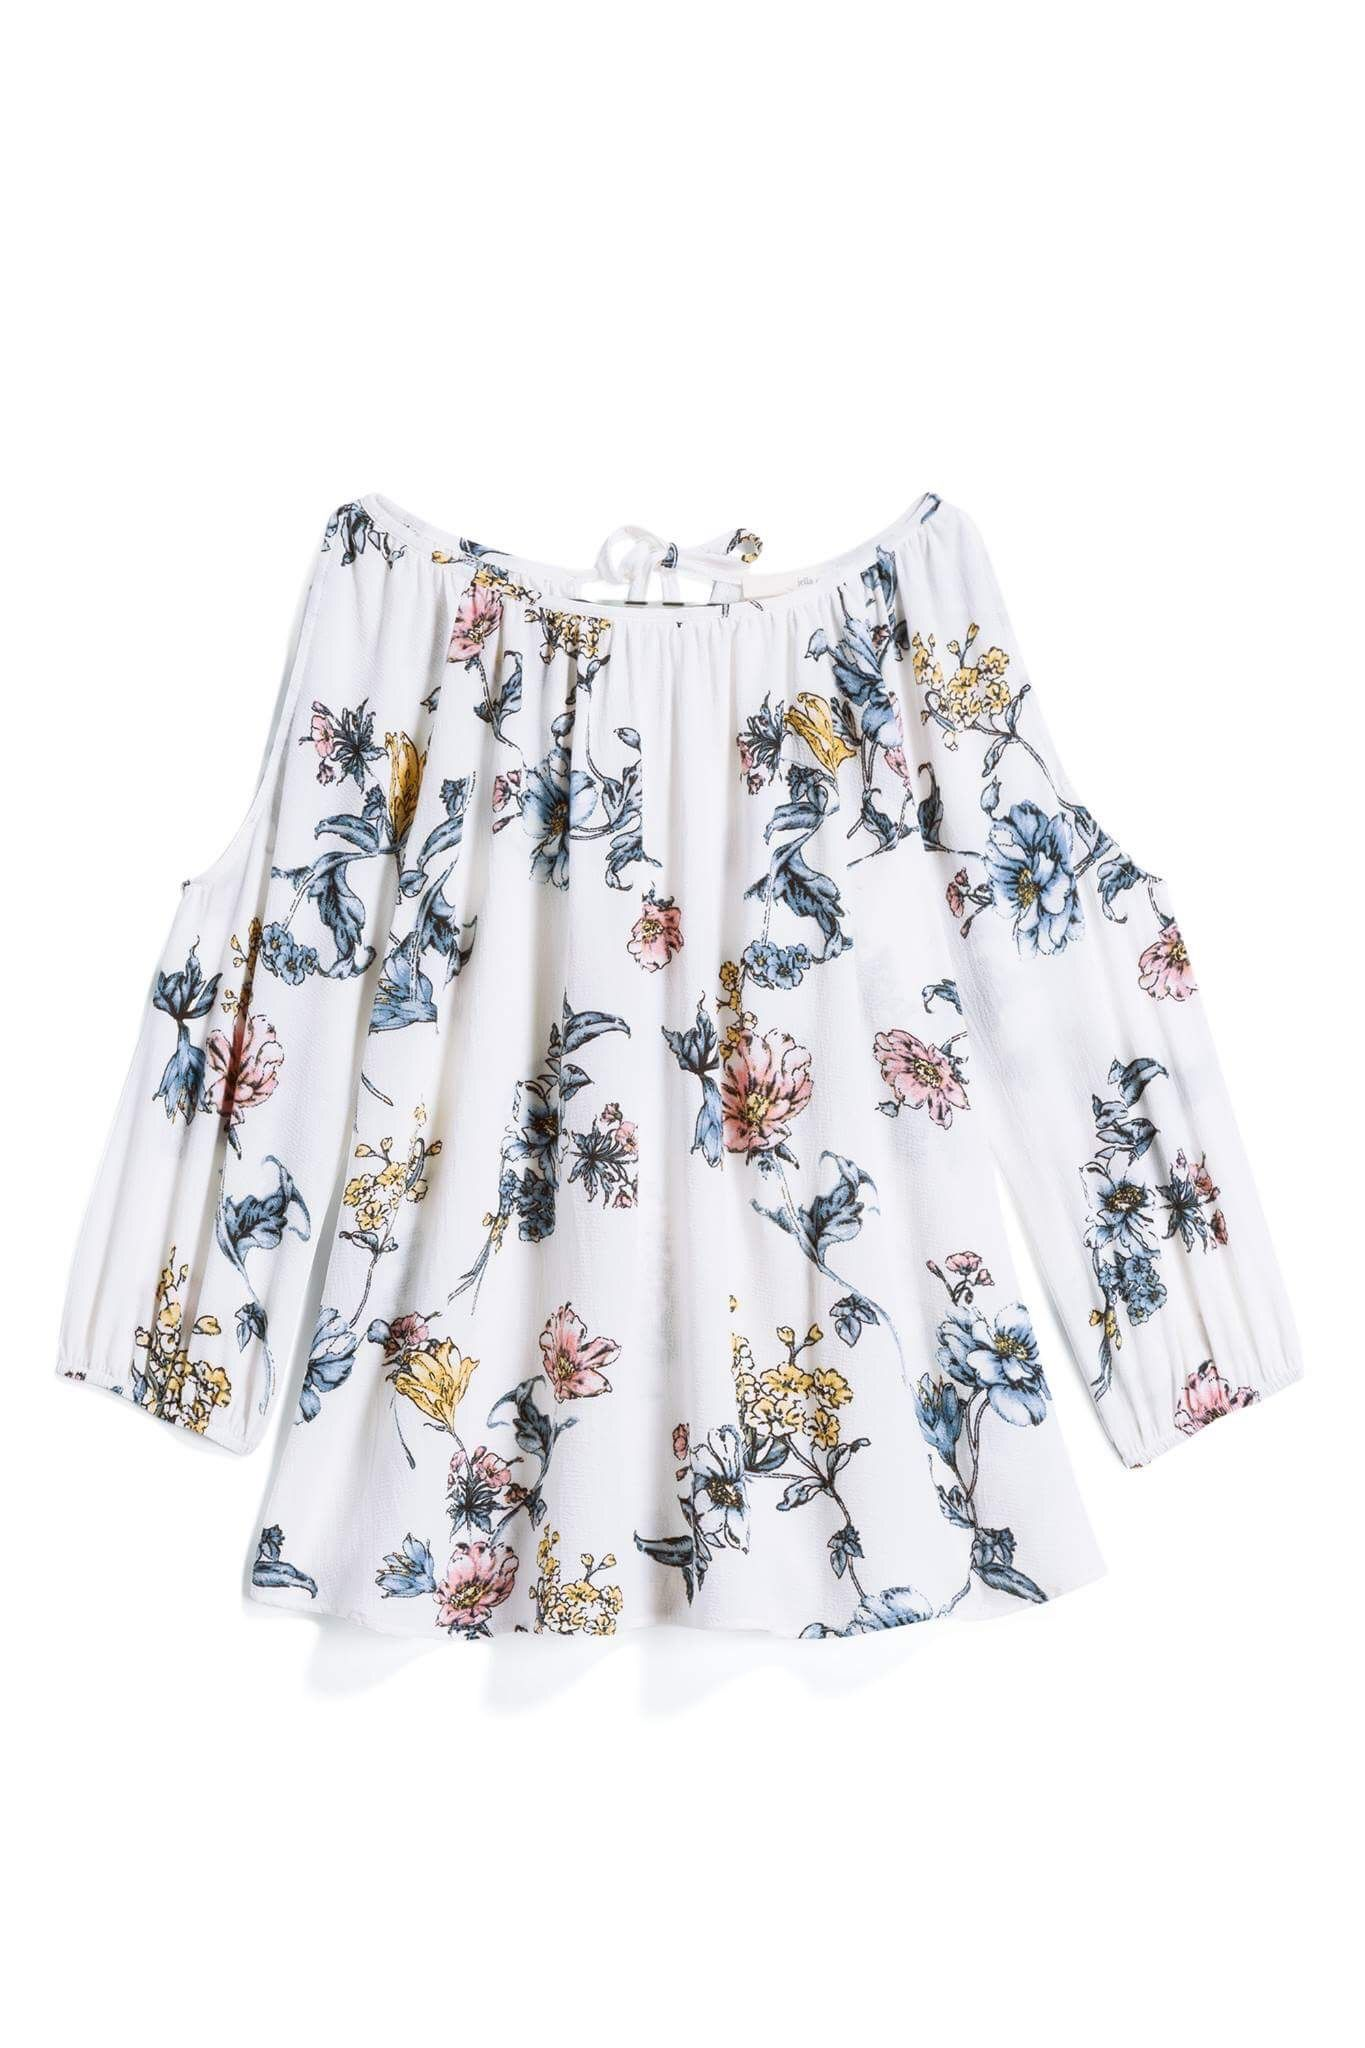 d4f0477cb31bfc Jella C Worthington Top - White Floral Cold Shoulder Back Tie Blouse -  Stitch Fix Style Quiz